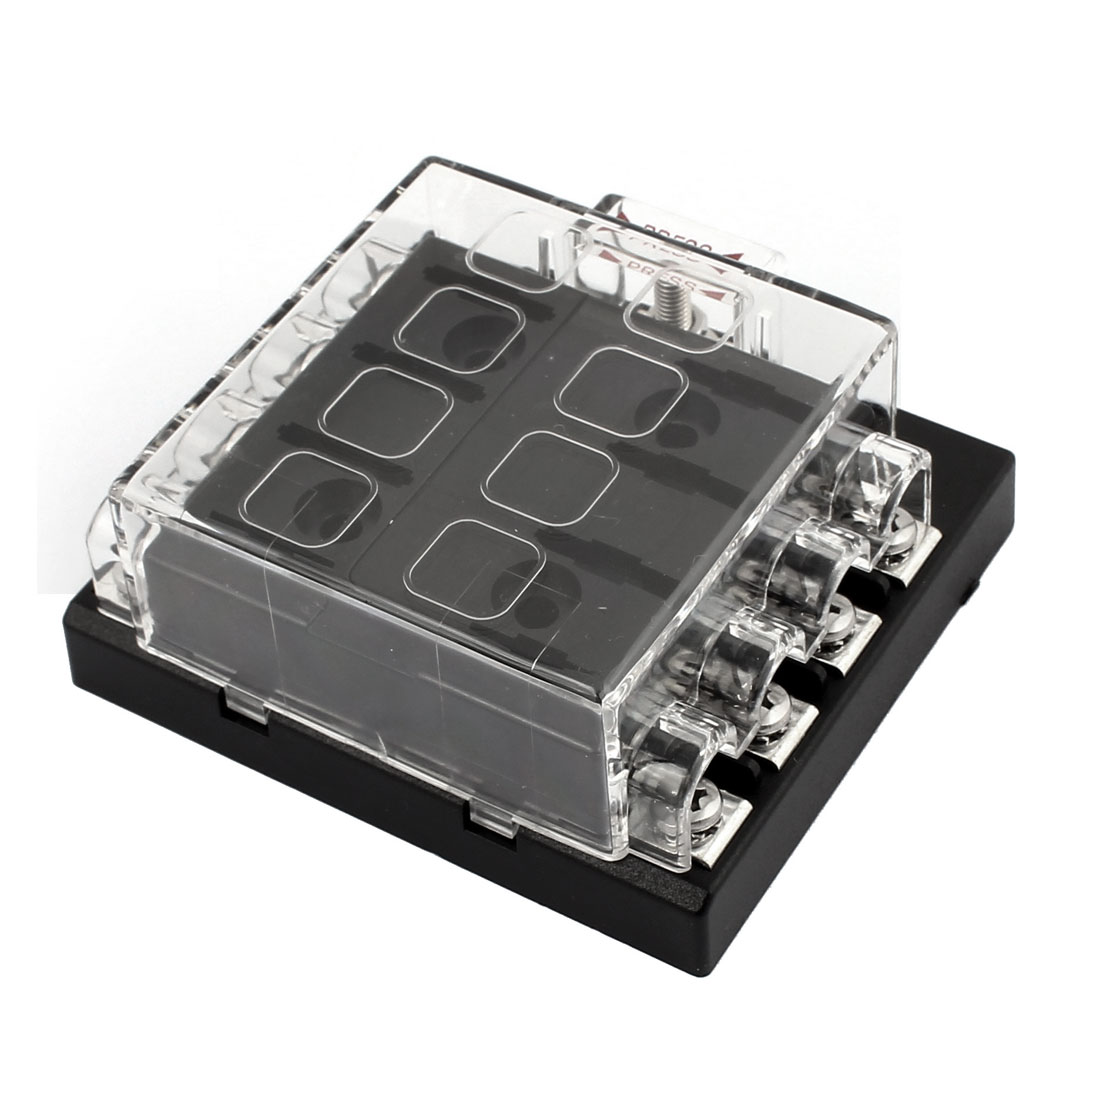 dc32v 8 way terminals circuit car auto blade fuse box block holder w 8 fuse block holder box [ 1100 x 1100 Pixel ]